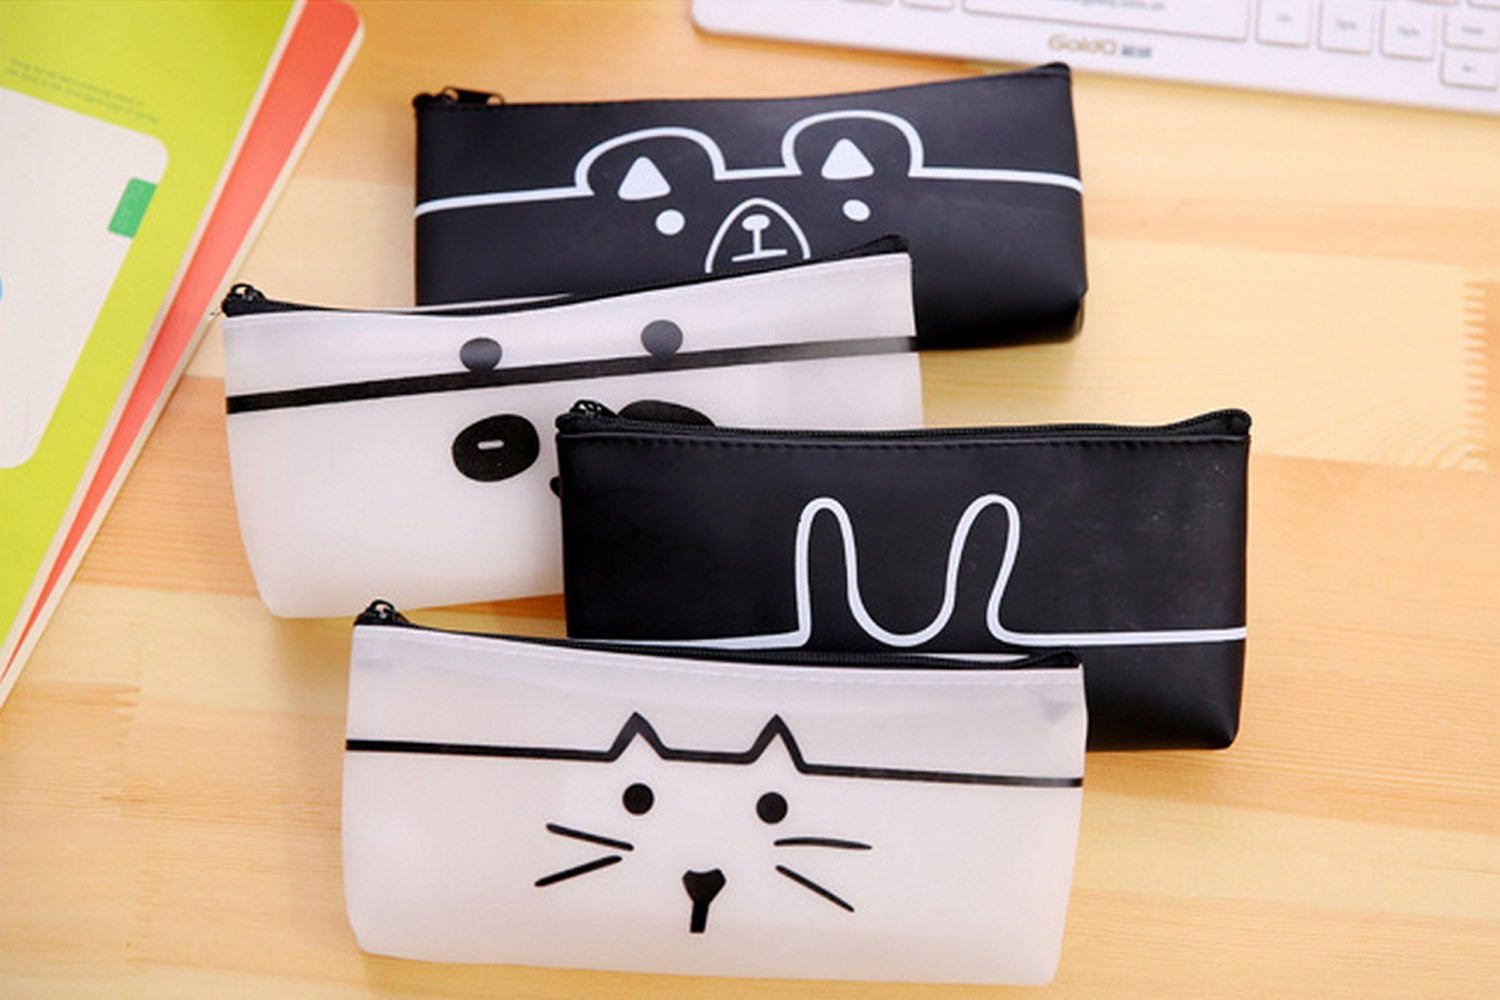 4 Pack Lovely Animal Multi-Fuctional Pencil-Pen Case Bag Pounch Cosmetic Makeup Bag Case-Cool Bear Rabbit Cat Panda style Cute & Practical Pencil Holder (Black & White Color)